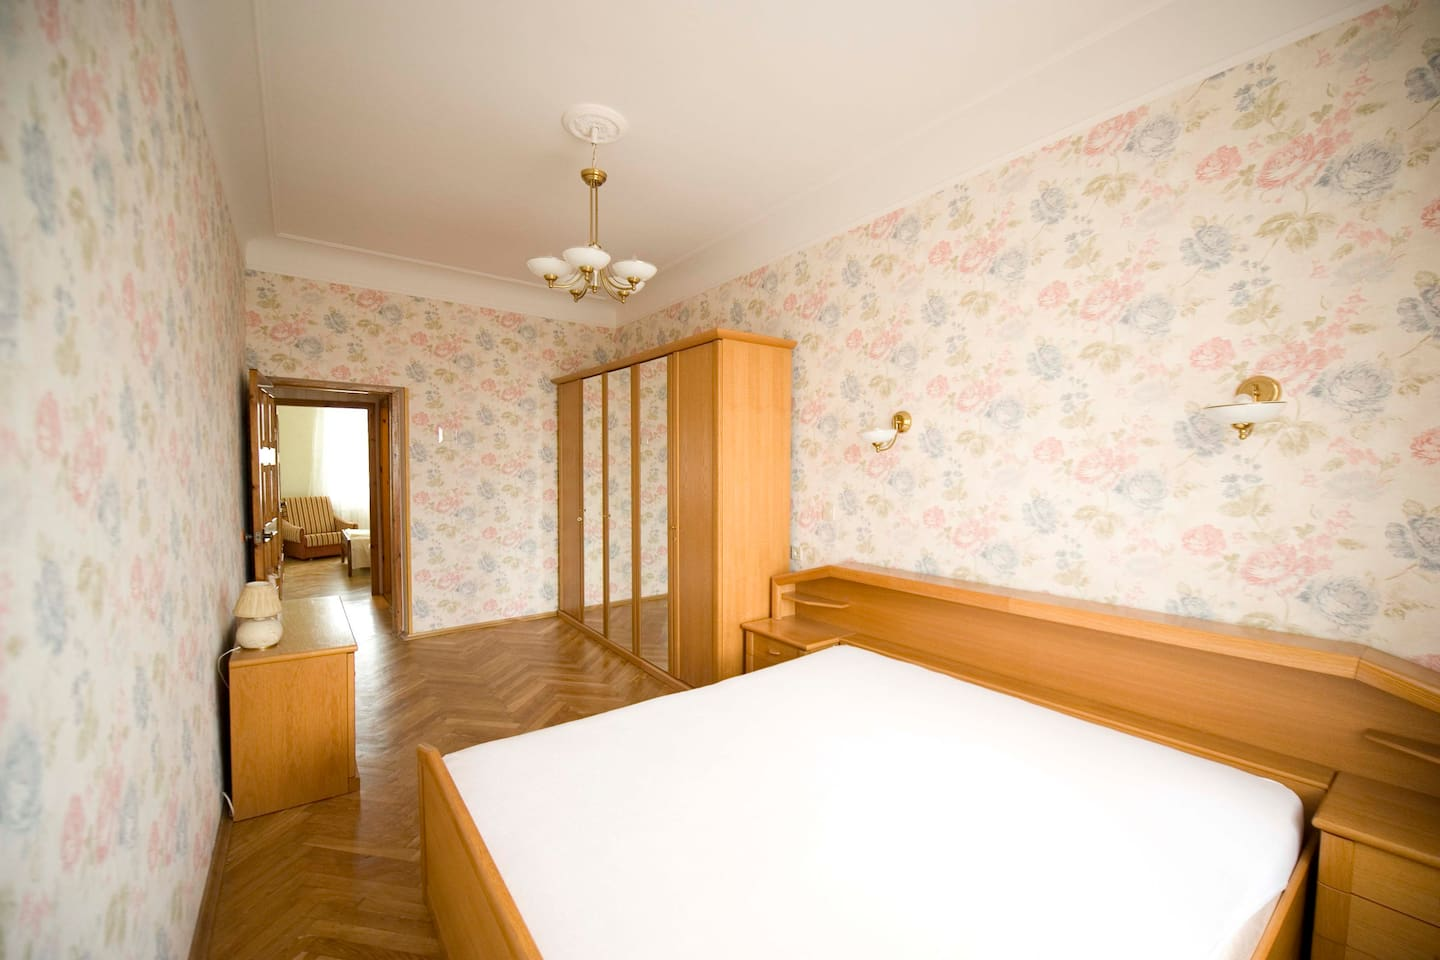 Bedroom 1, view from the window